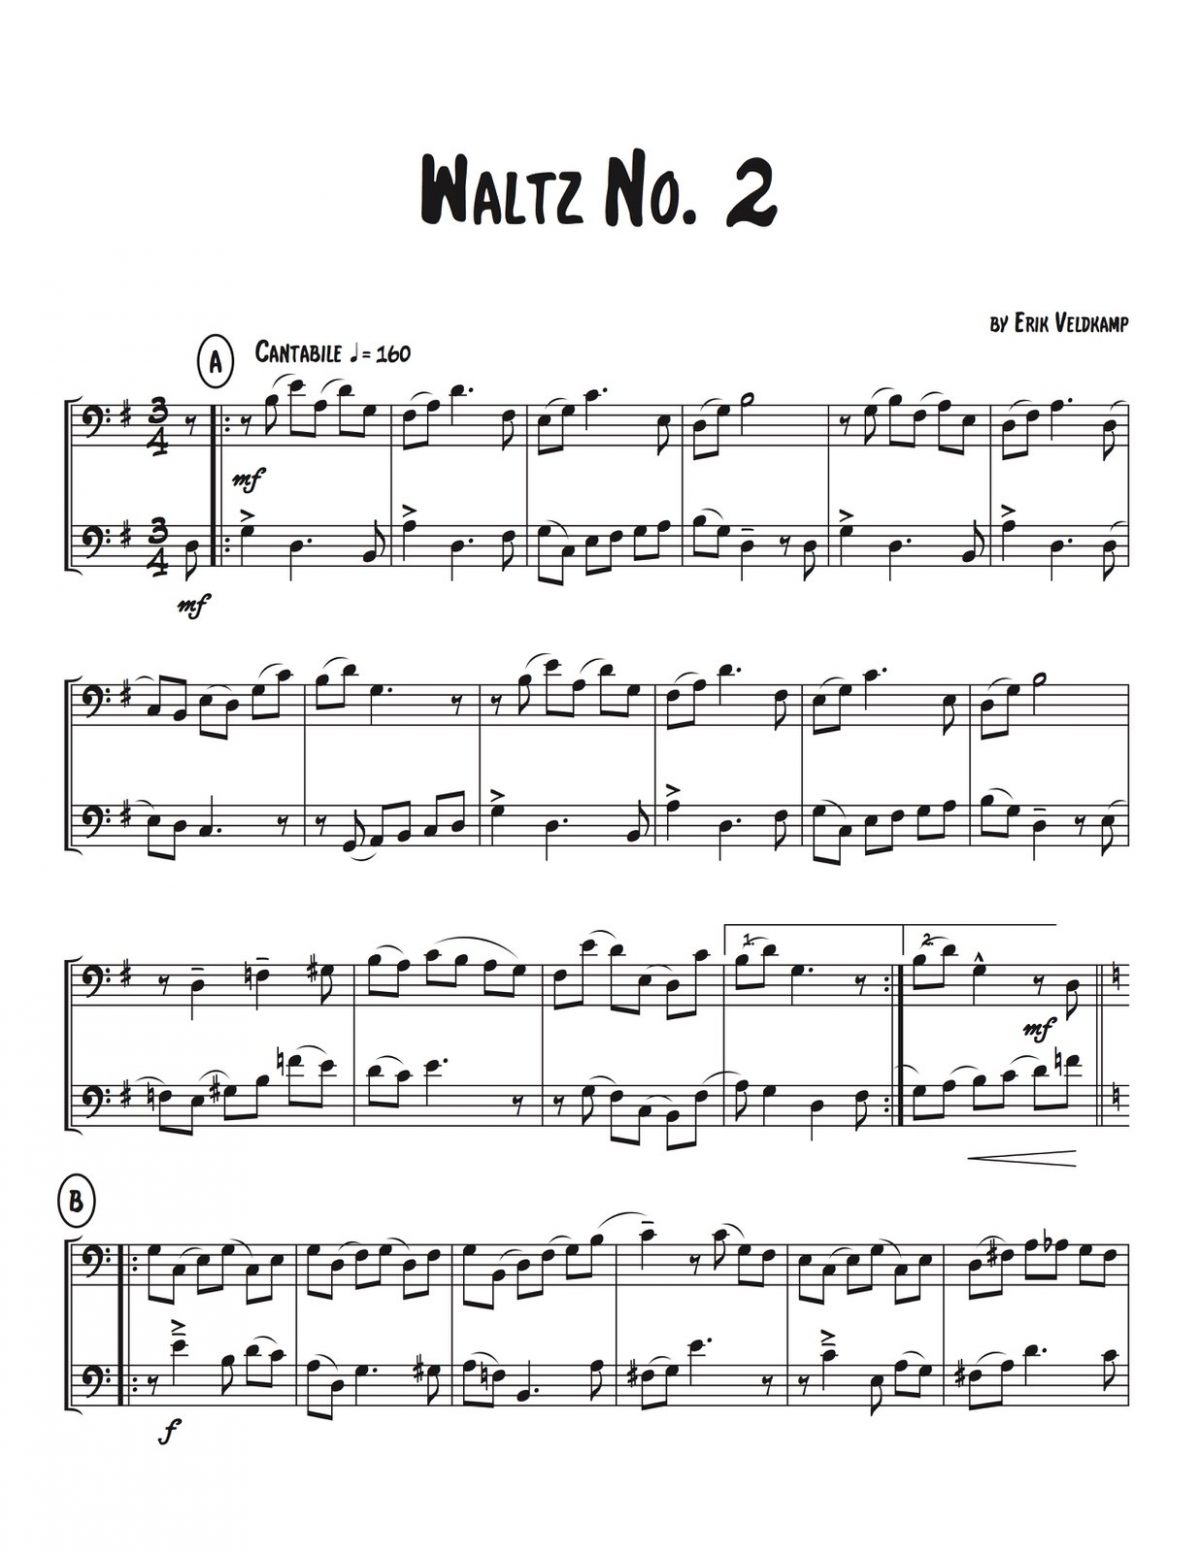 Veldkamp, Waltzing Duets for Trombone-p06